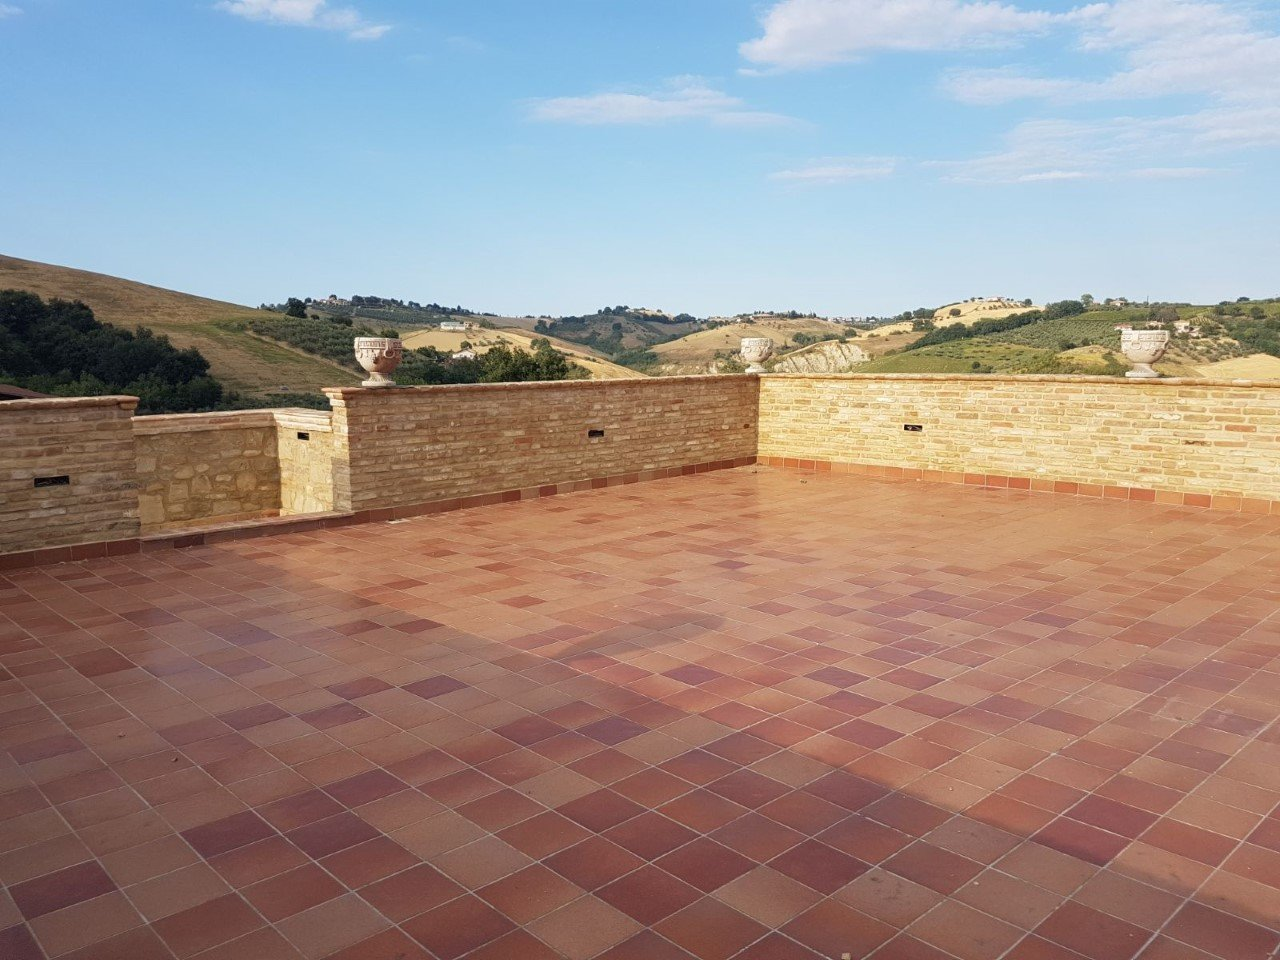 Countryhouse with roof terrace, vineyard and olive grove